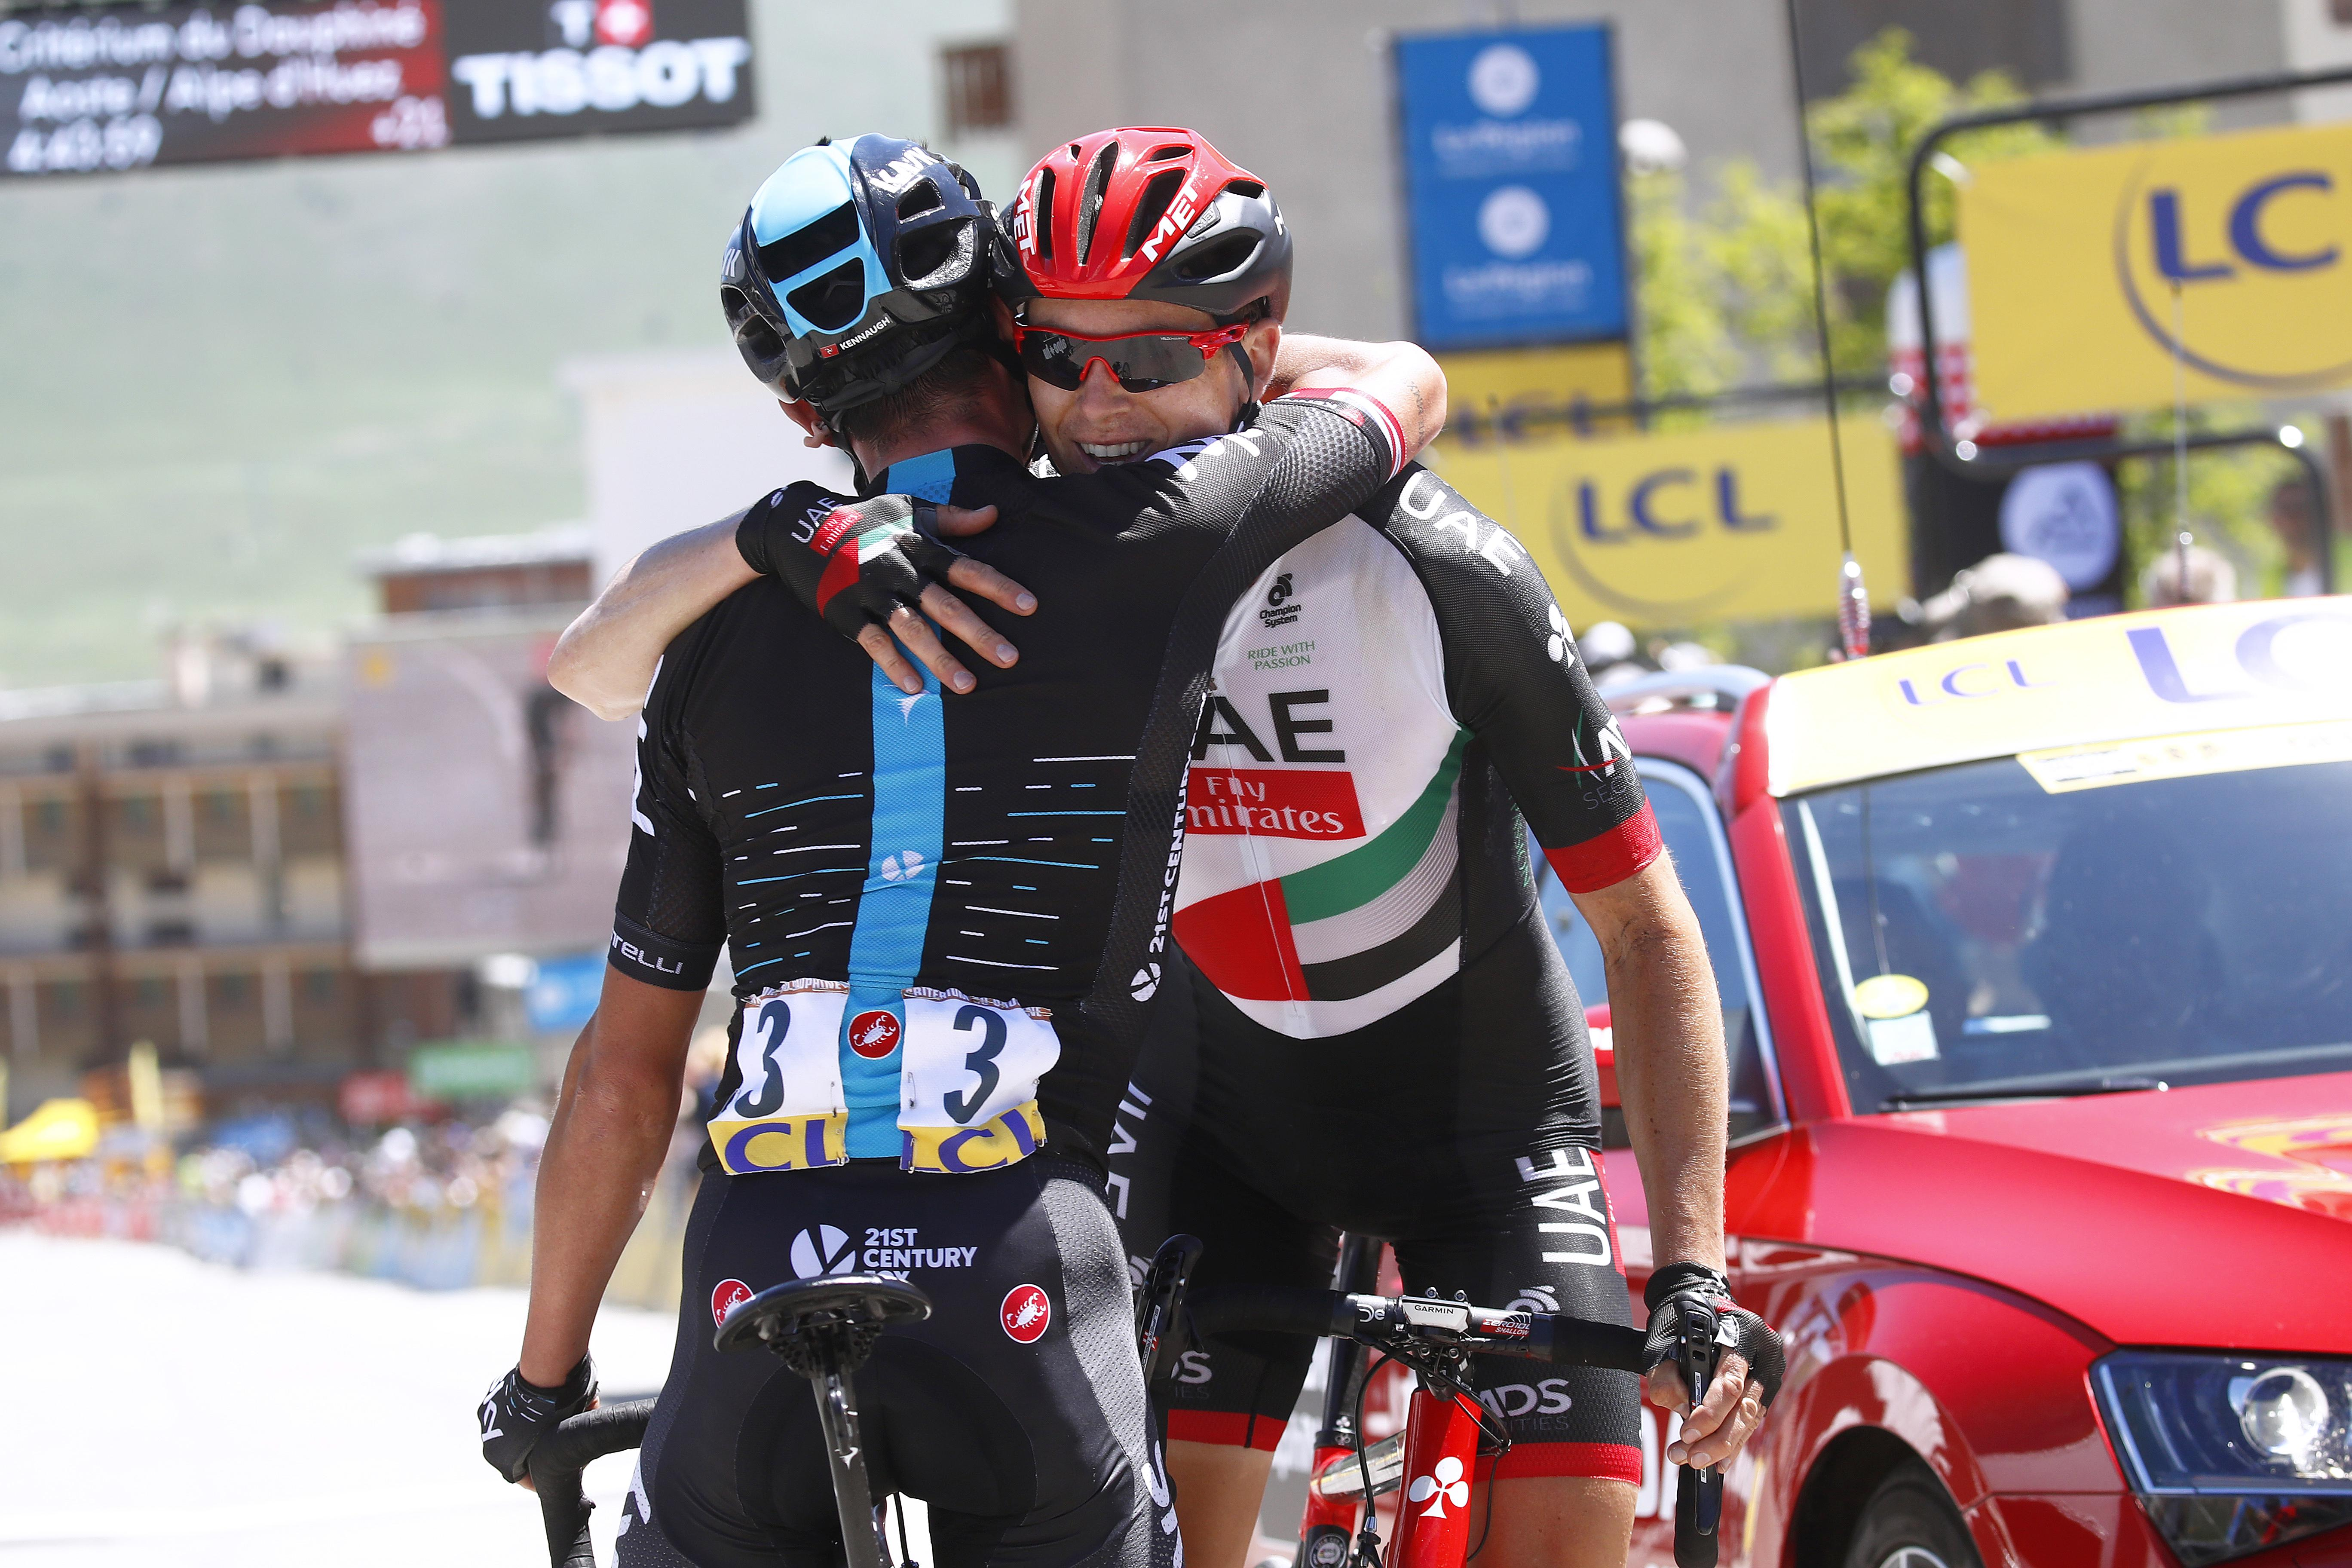 Pete Kennaugh and Ben Swift enjoyed finishing first and second on the iconic Alpe d'Huez